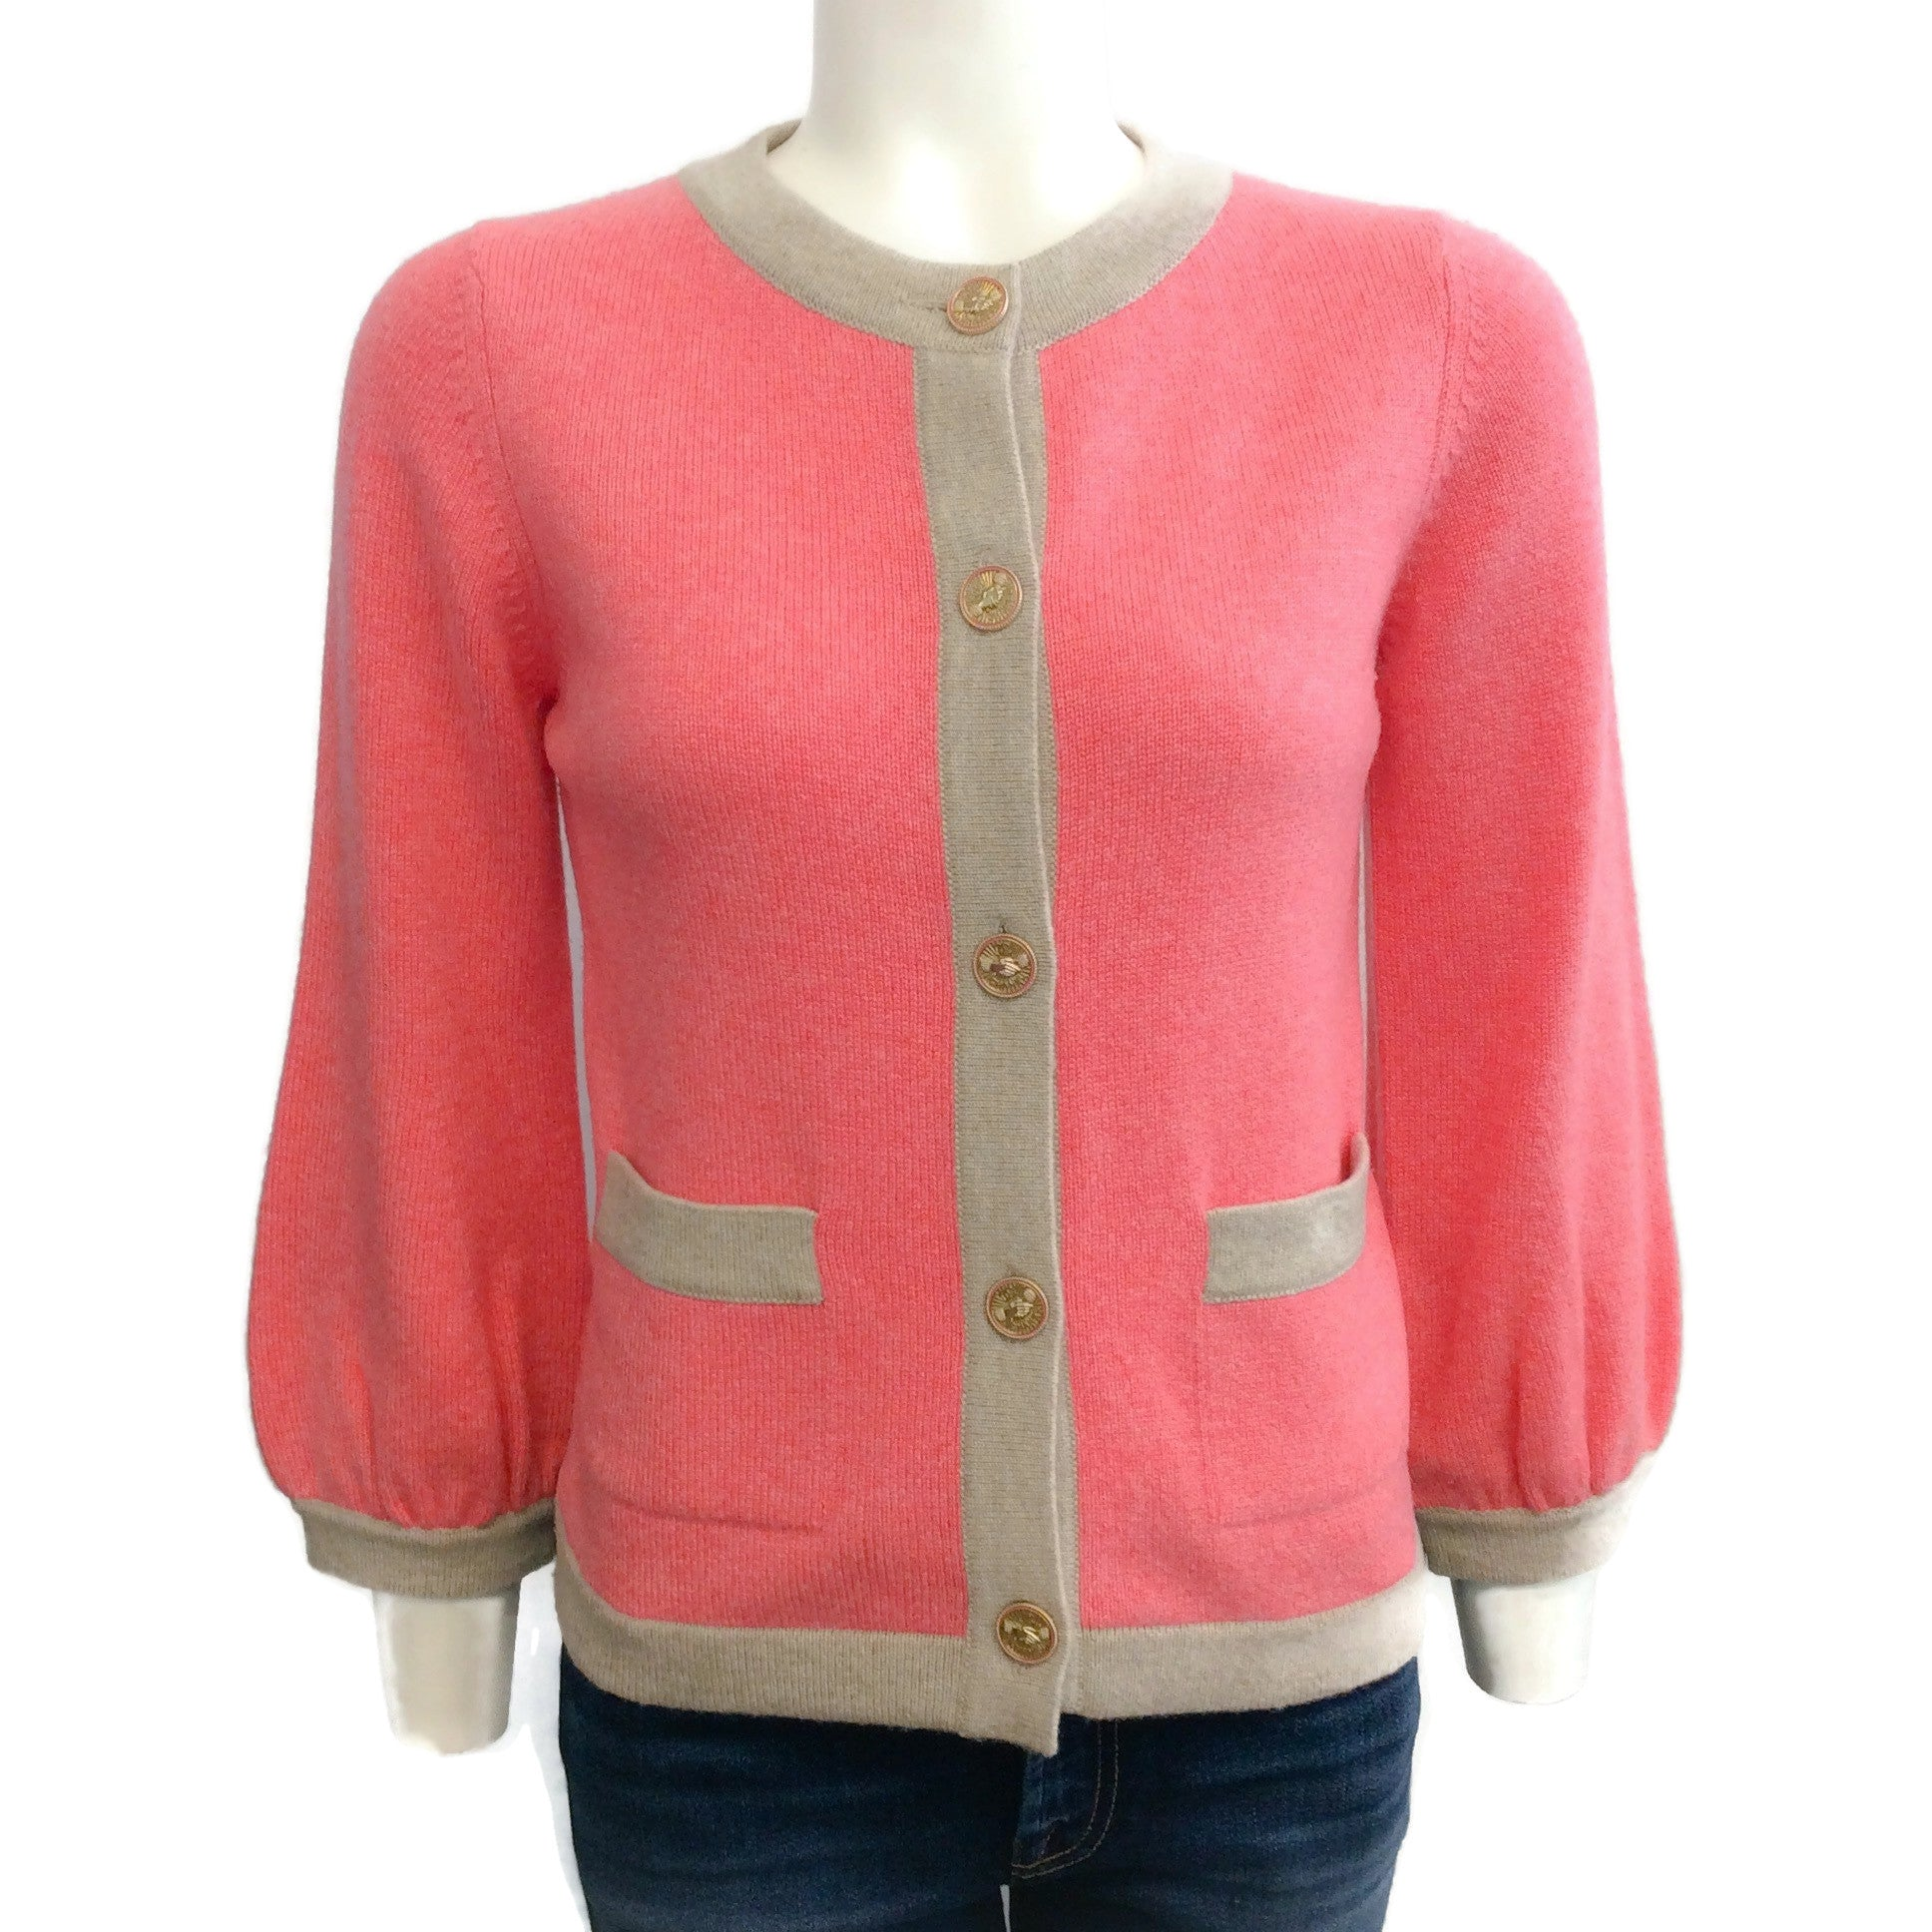 Chanel 08P Coral with Tan Trim Sweater